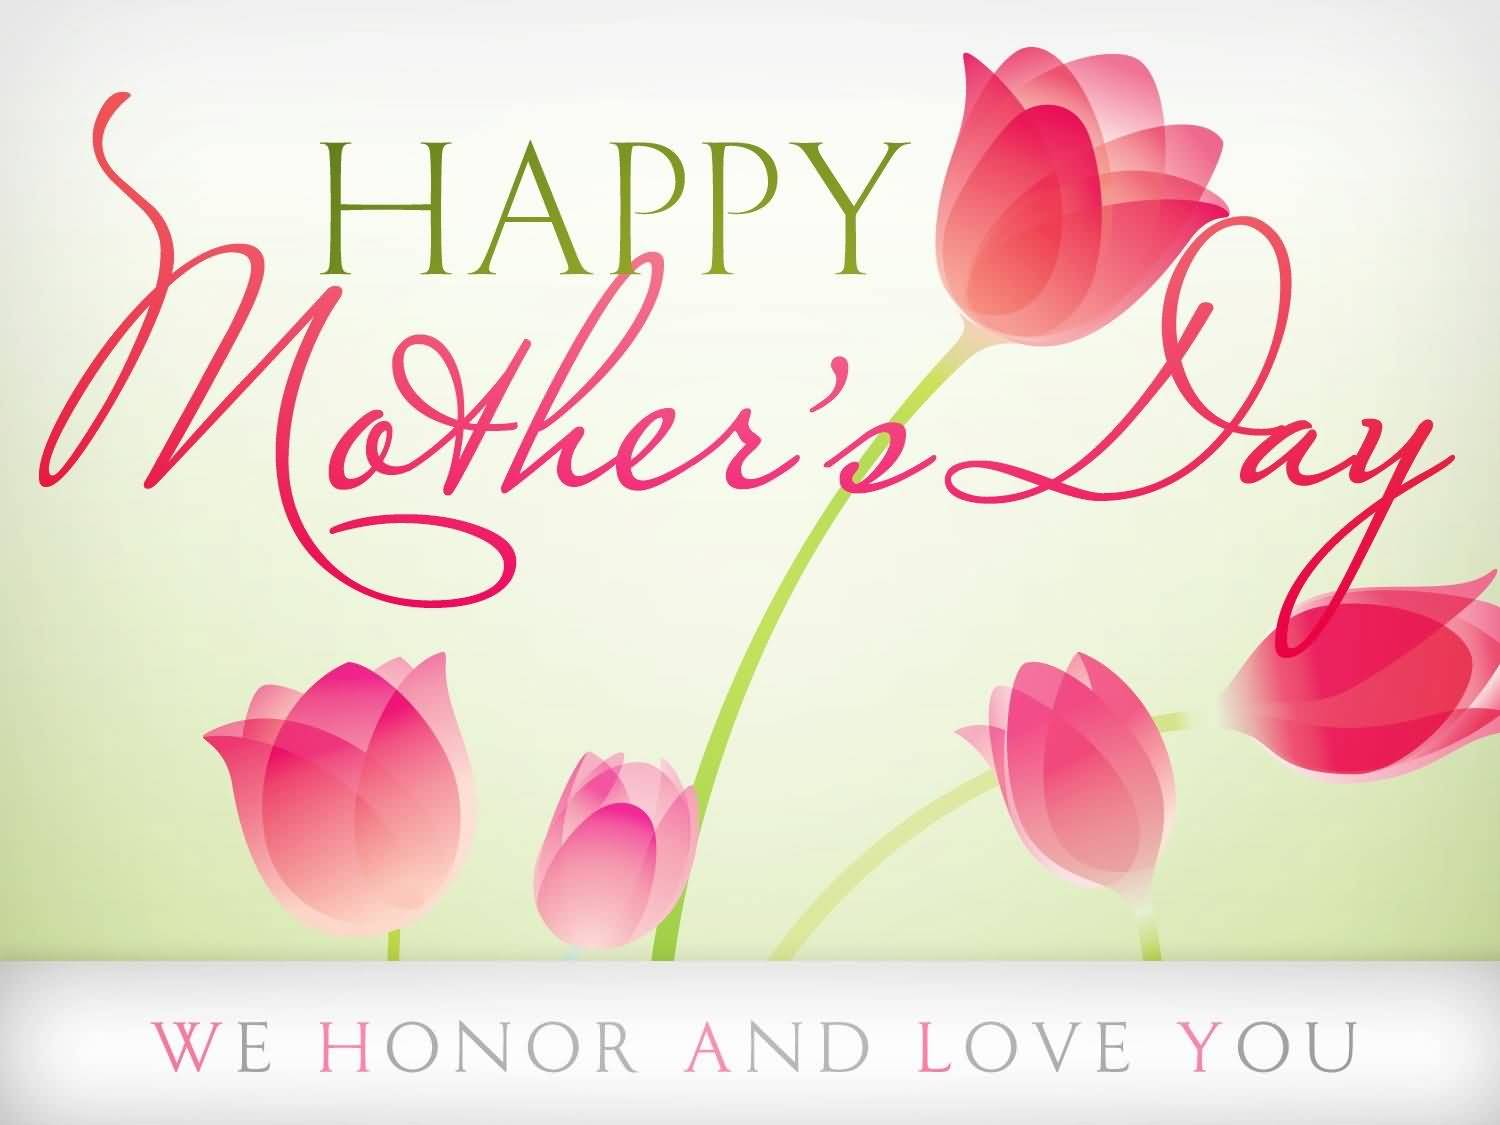 60 beautiful mothers day 2017 greeting card pictures happy mothers day we honor and love you card kristyandbryce Image collections